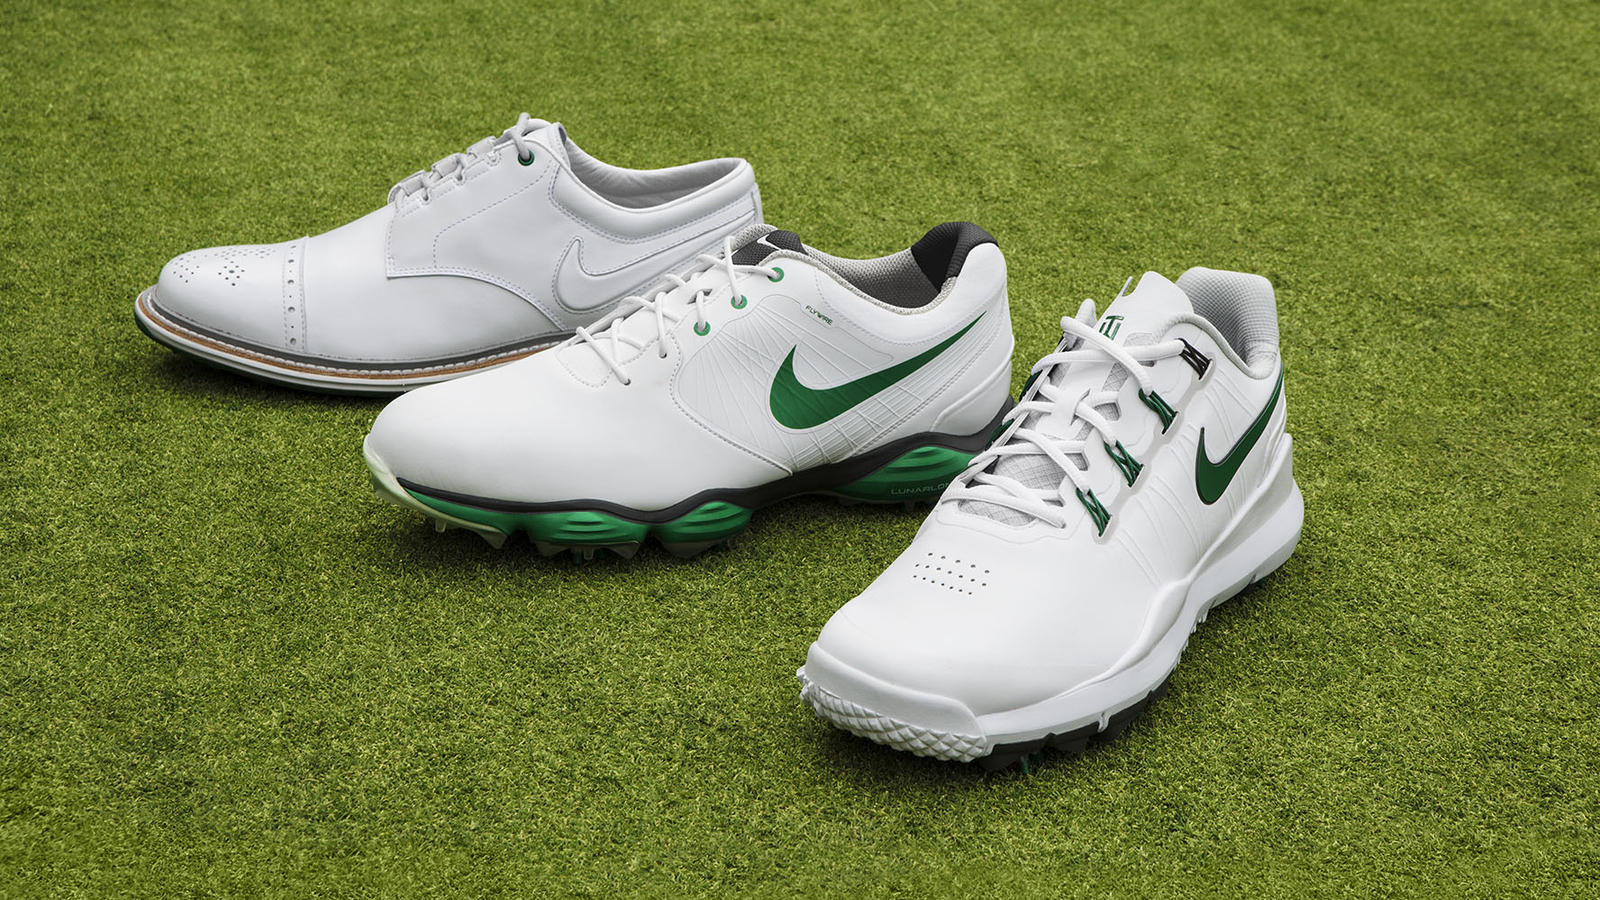 8dd6e10ddc51c Performance Meets Tradition: Nike Golf's New Limited Edition ...